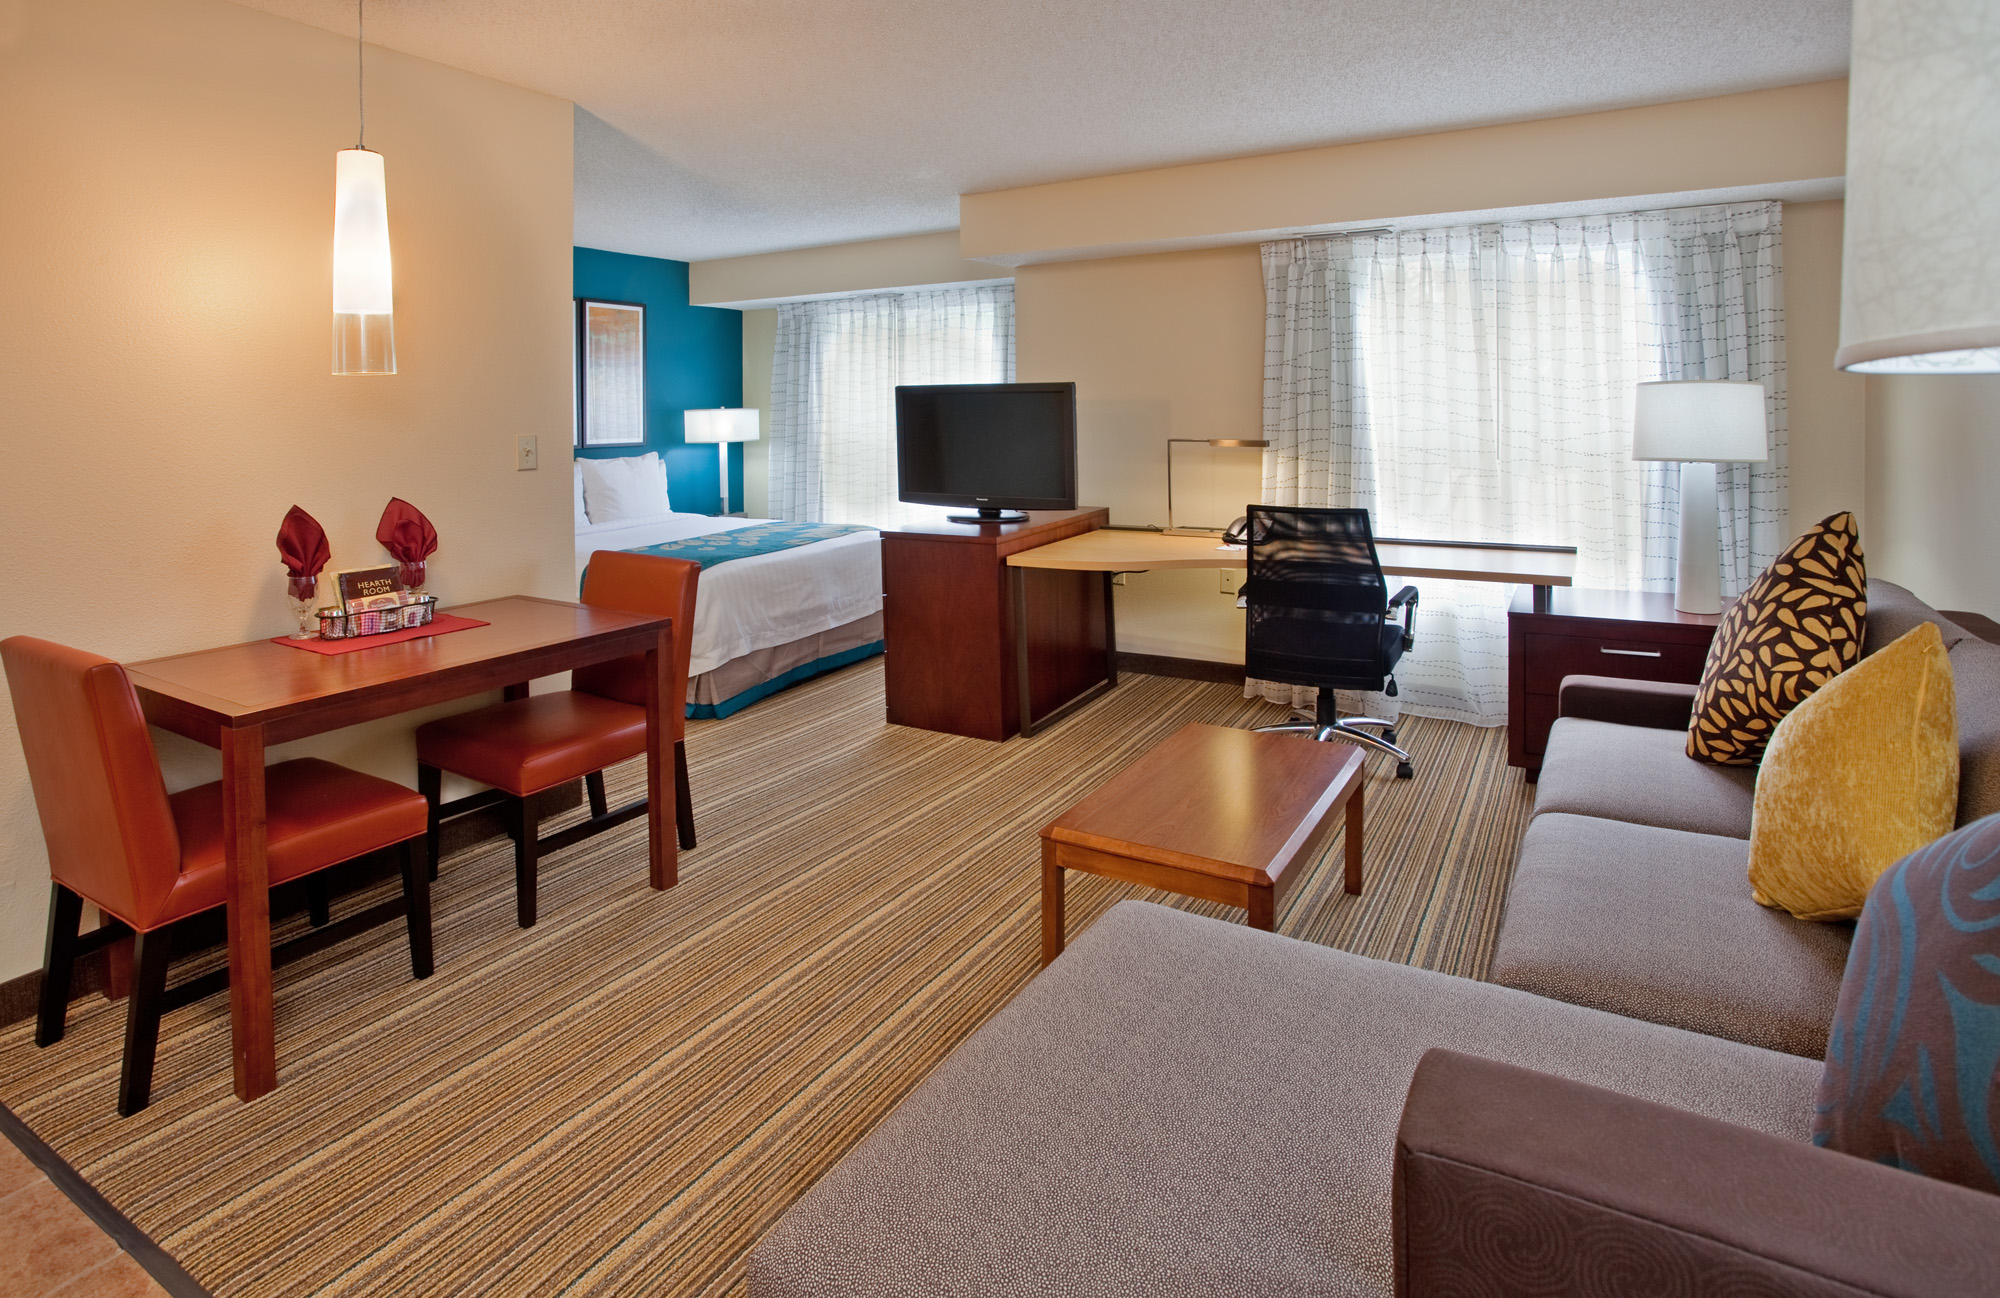 Residence Inn by Marriott Houston Sugar Land image 2